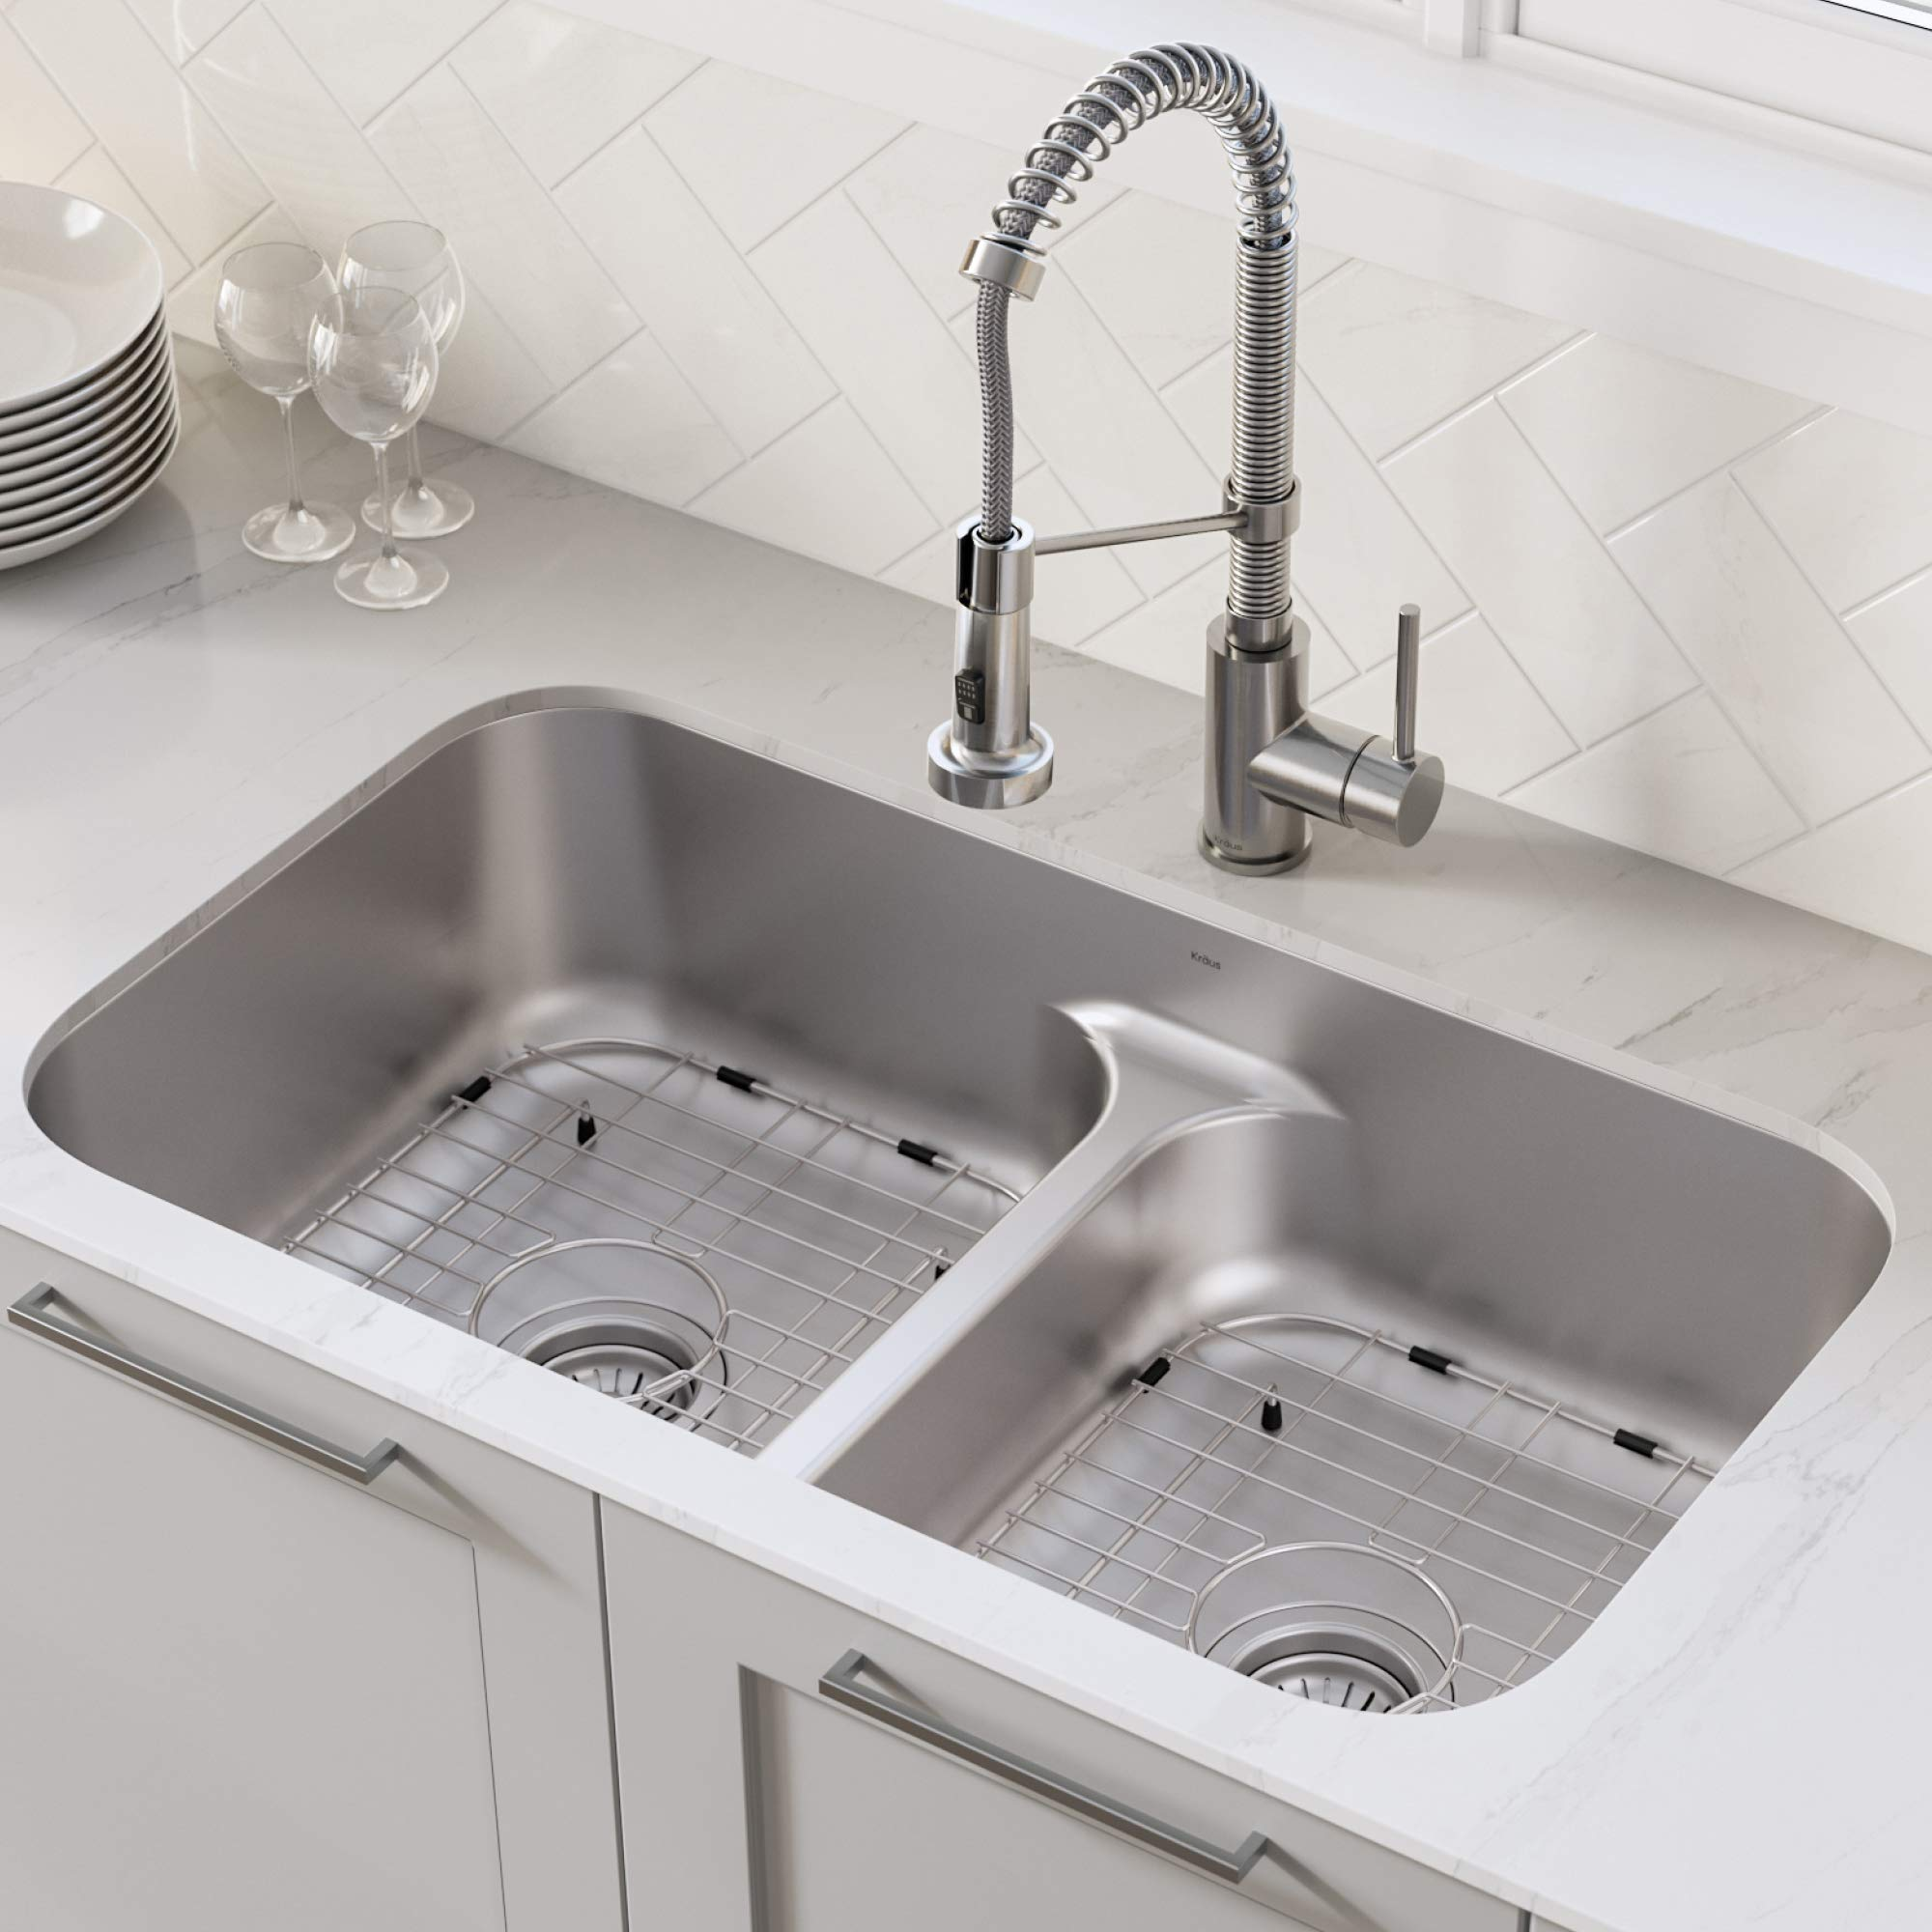 KRAUS KBU32 Premier 32-inch 16 Gauge Undermount 50/50 Double Bowl Kitchen Sink with Smart Low Divider by Kraus (Image #2)